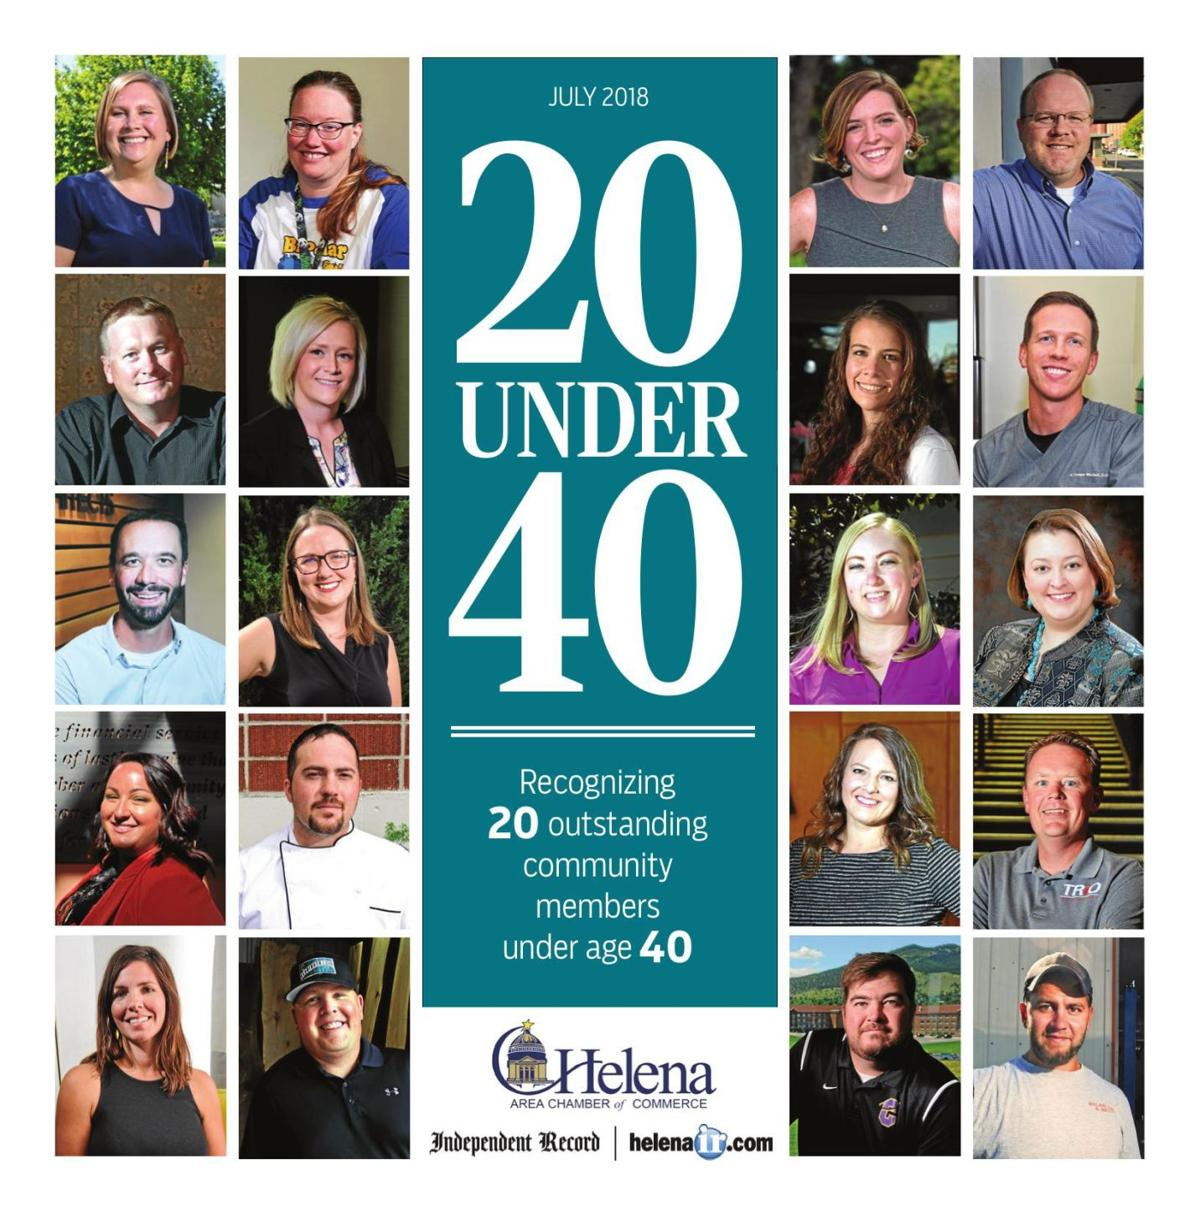 20 Under 40 - Recognizing 20 Outstanding Community Members Under Age 40 - July 2018